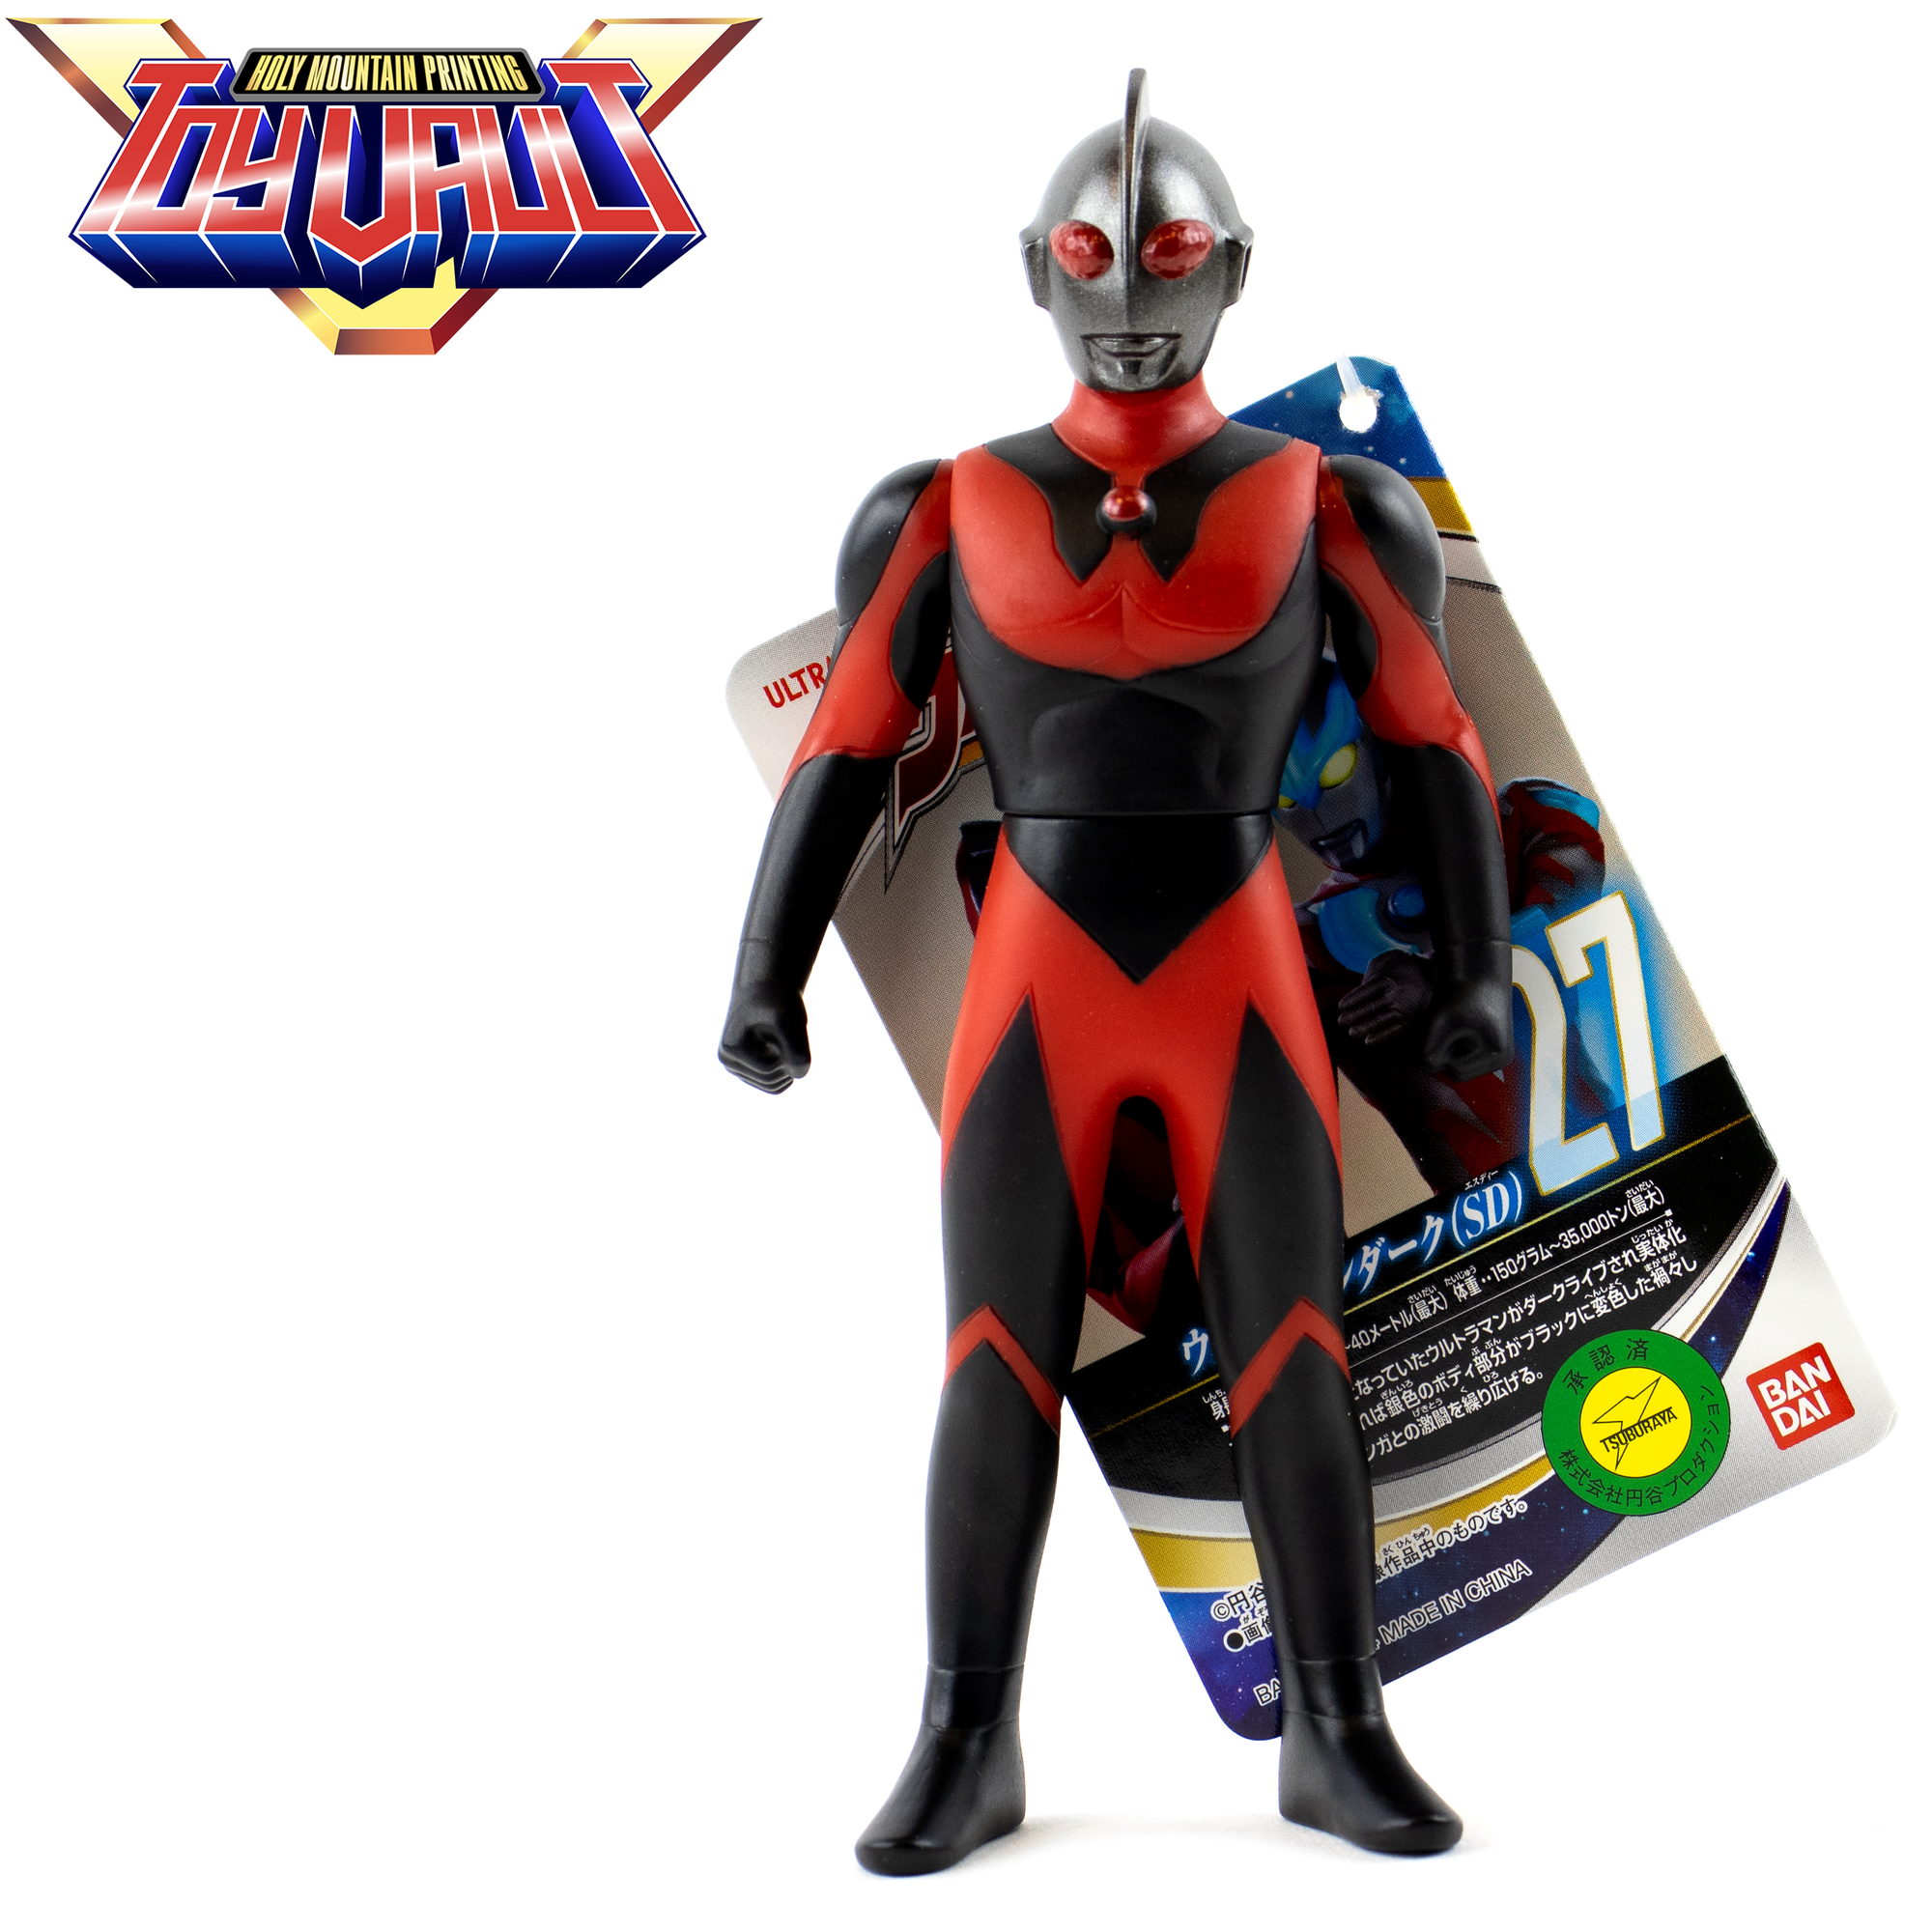 BANDAI - ULTRA HERO SERIES #27: ULTRAMAN DARK